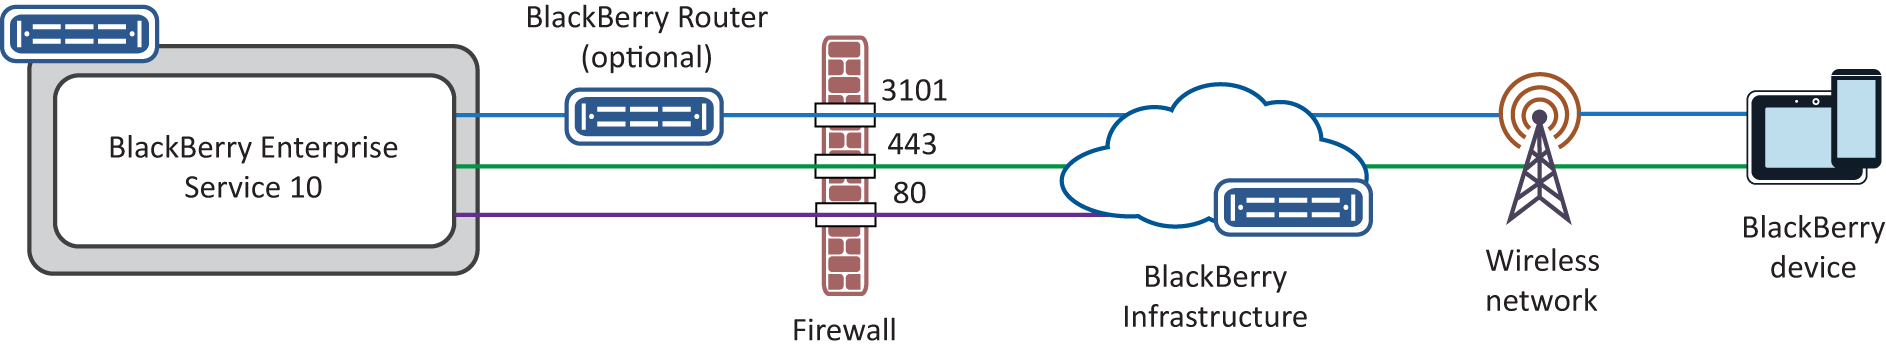 Planning an upgrade Configure your organization's firewall to allow outbound and inbound connections over these ports.